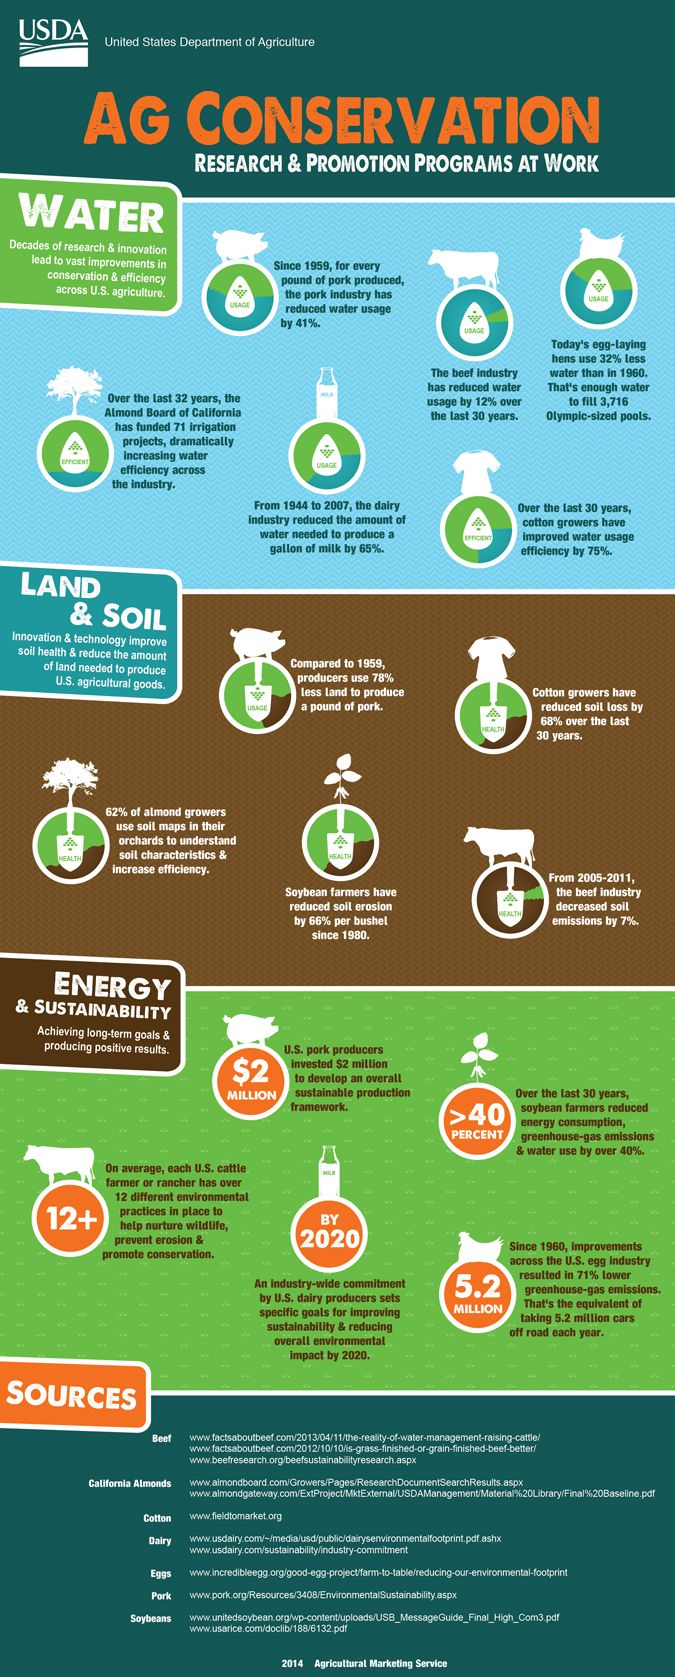 Yep - it's Friday Fun Ag Fact time! Check out this great infographic from USDA's AMS team. See the improvements in water conservation & efficiency across US agriculture.